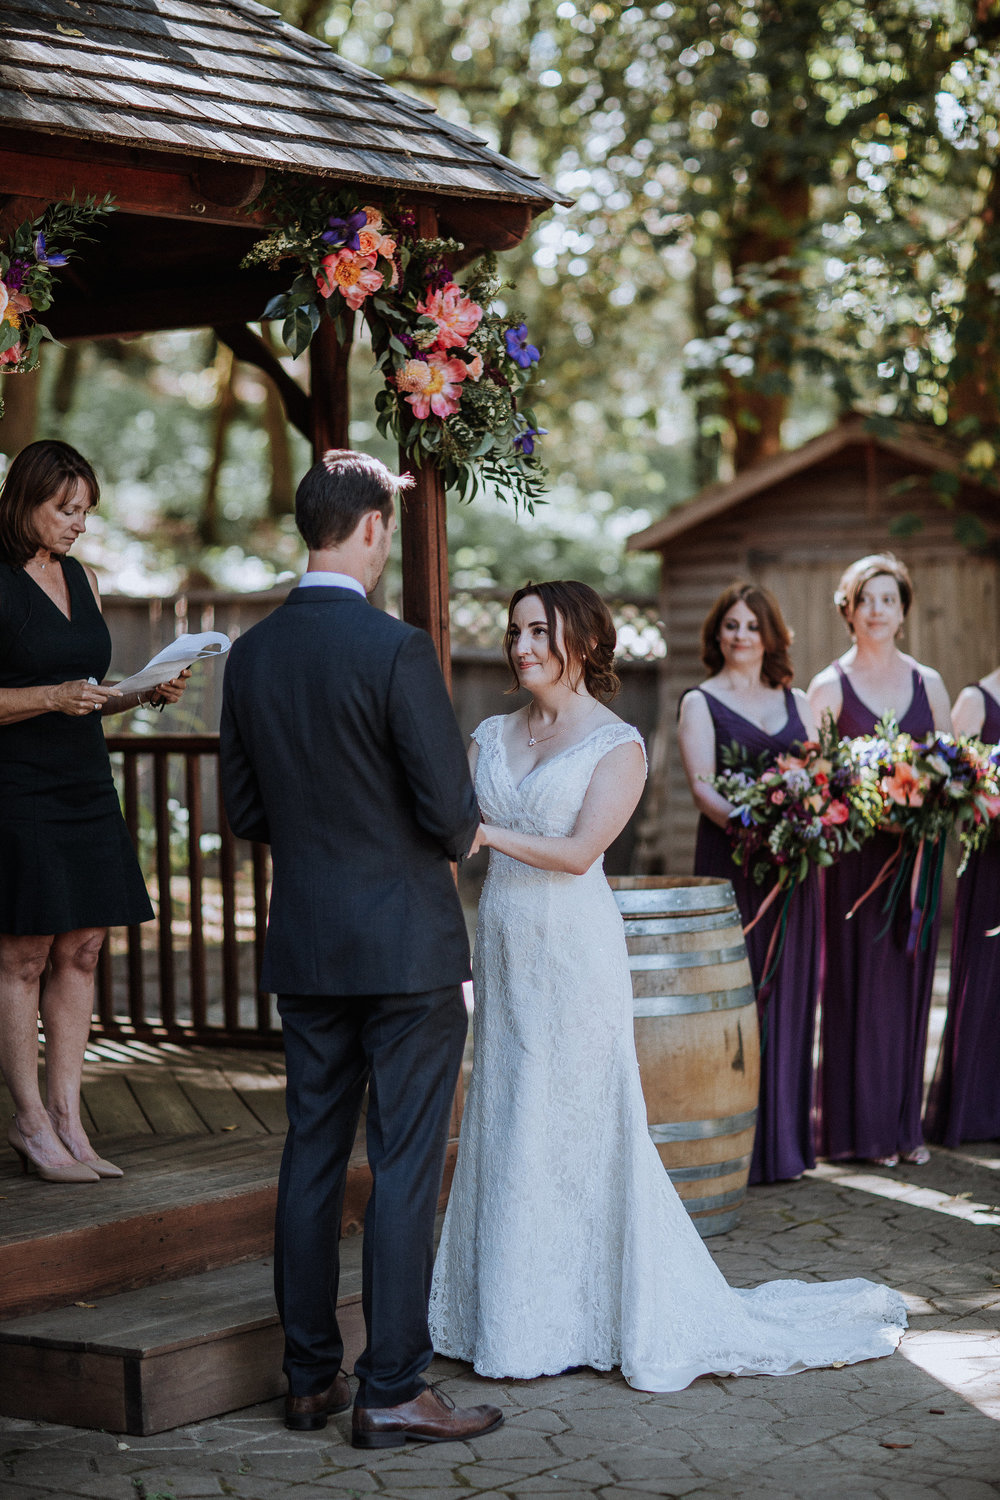 Colorful ceremony flowers by Venn Floral in Healdsburg, California photographed by Gretchen Gause at Villa Chanticleer.